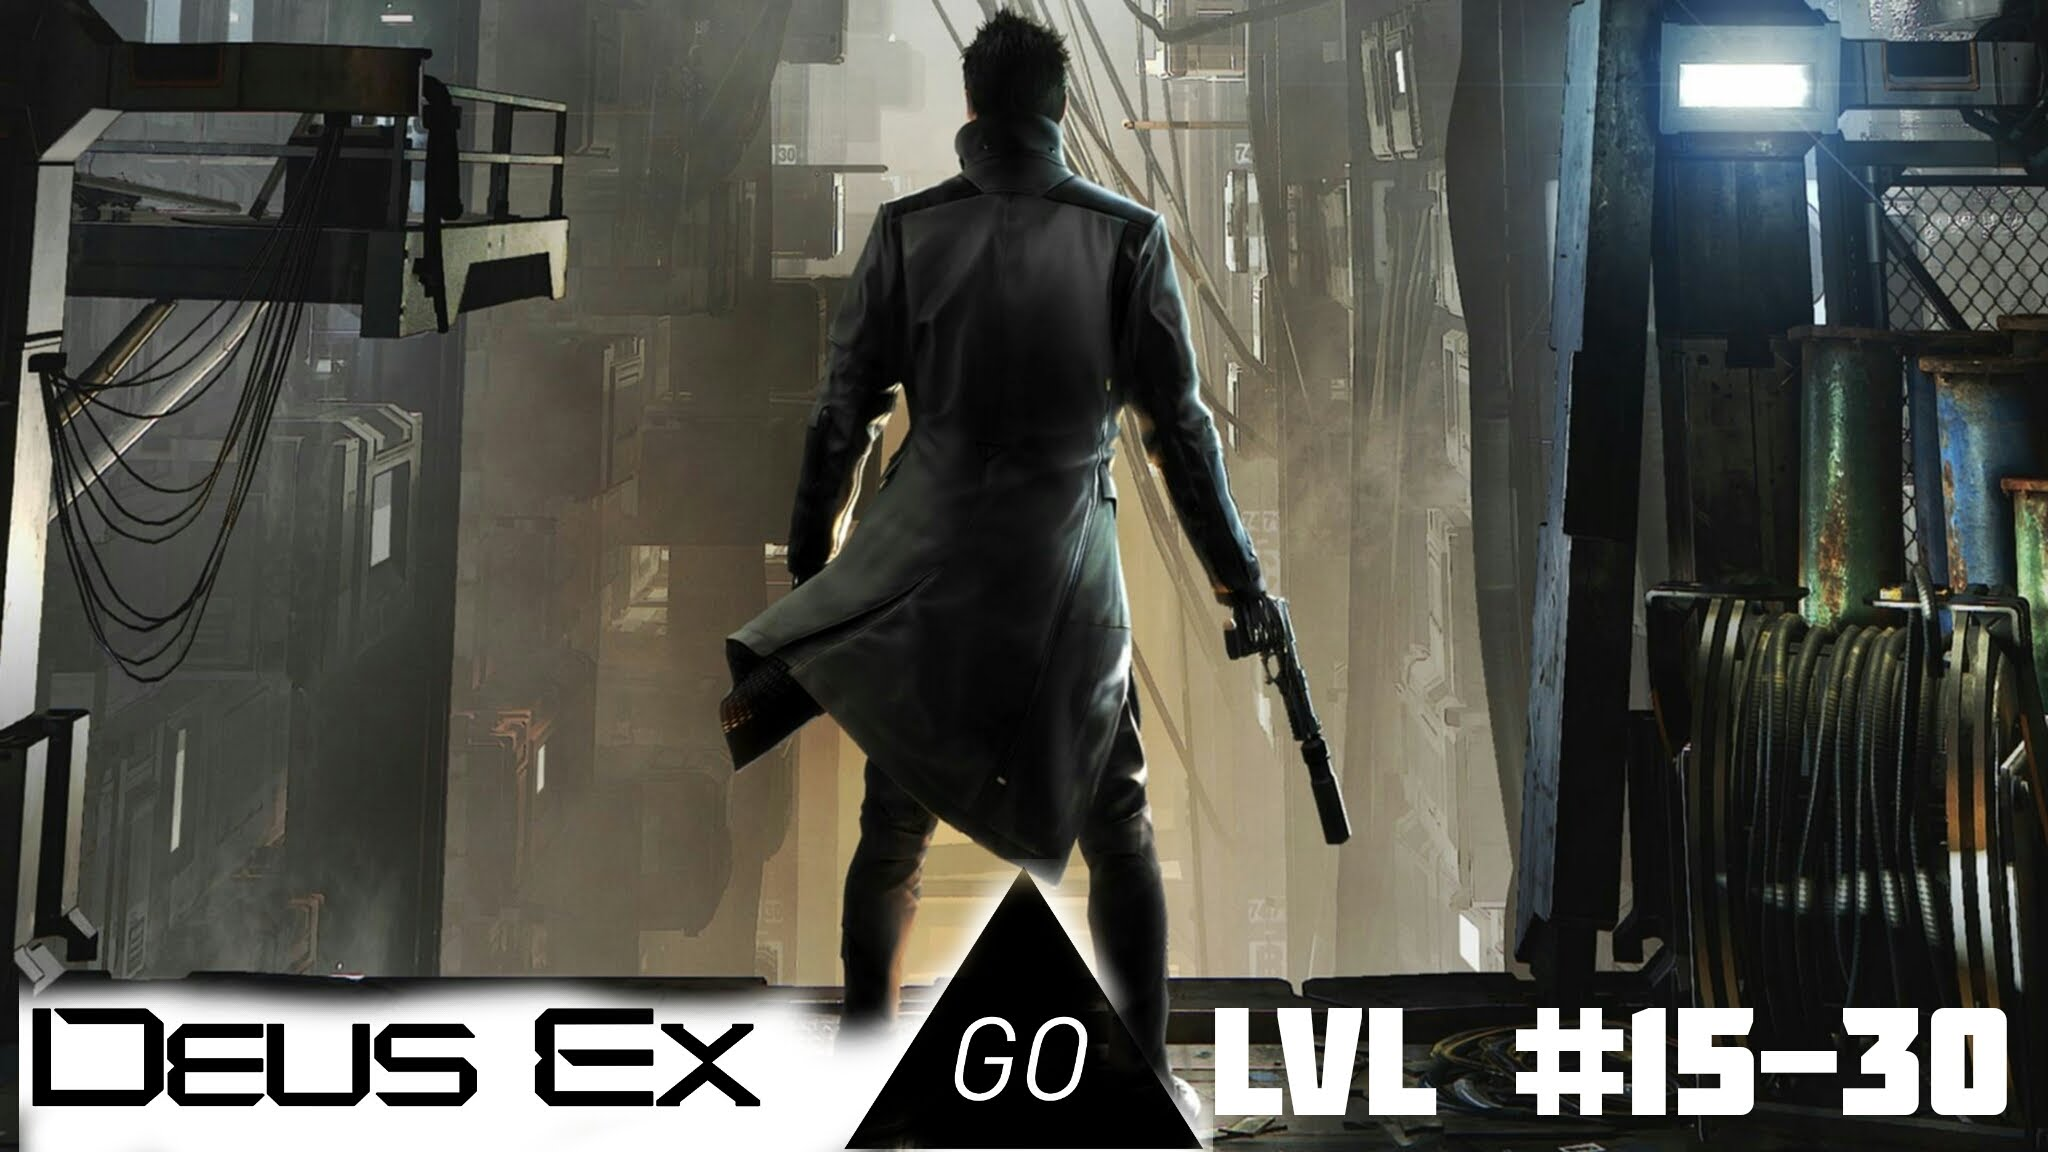 Deus-ex-go-Gold-rank-walkthrough-lvl-wallpaper-wp3804544